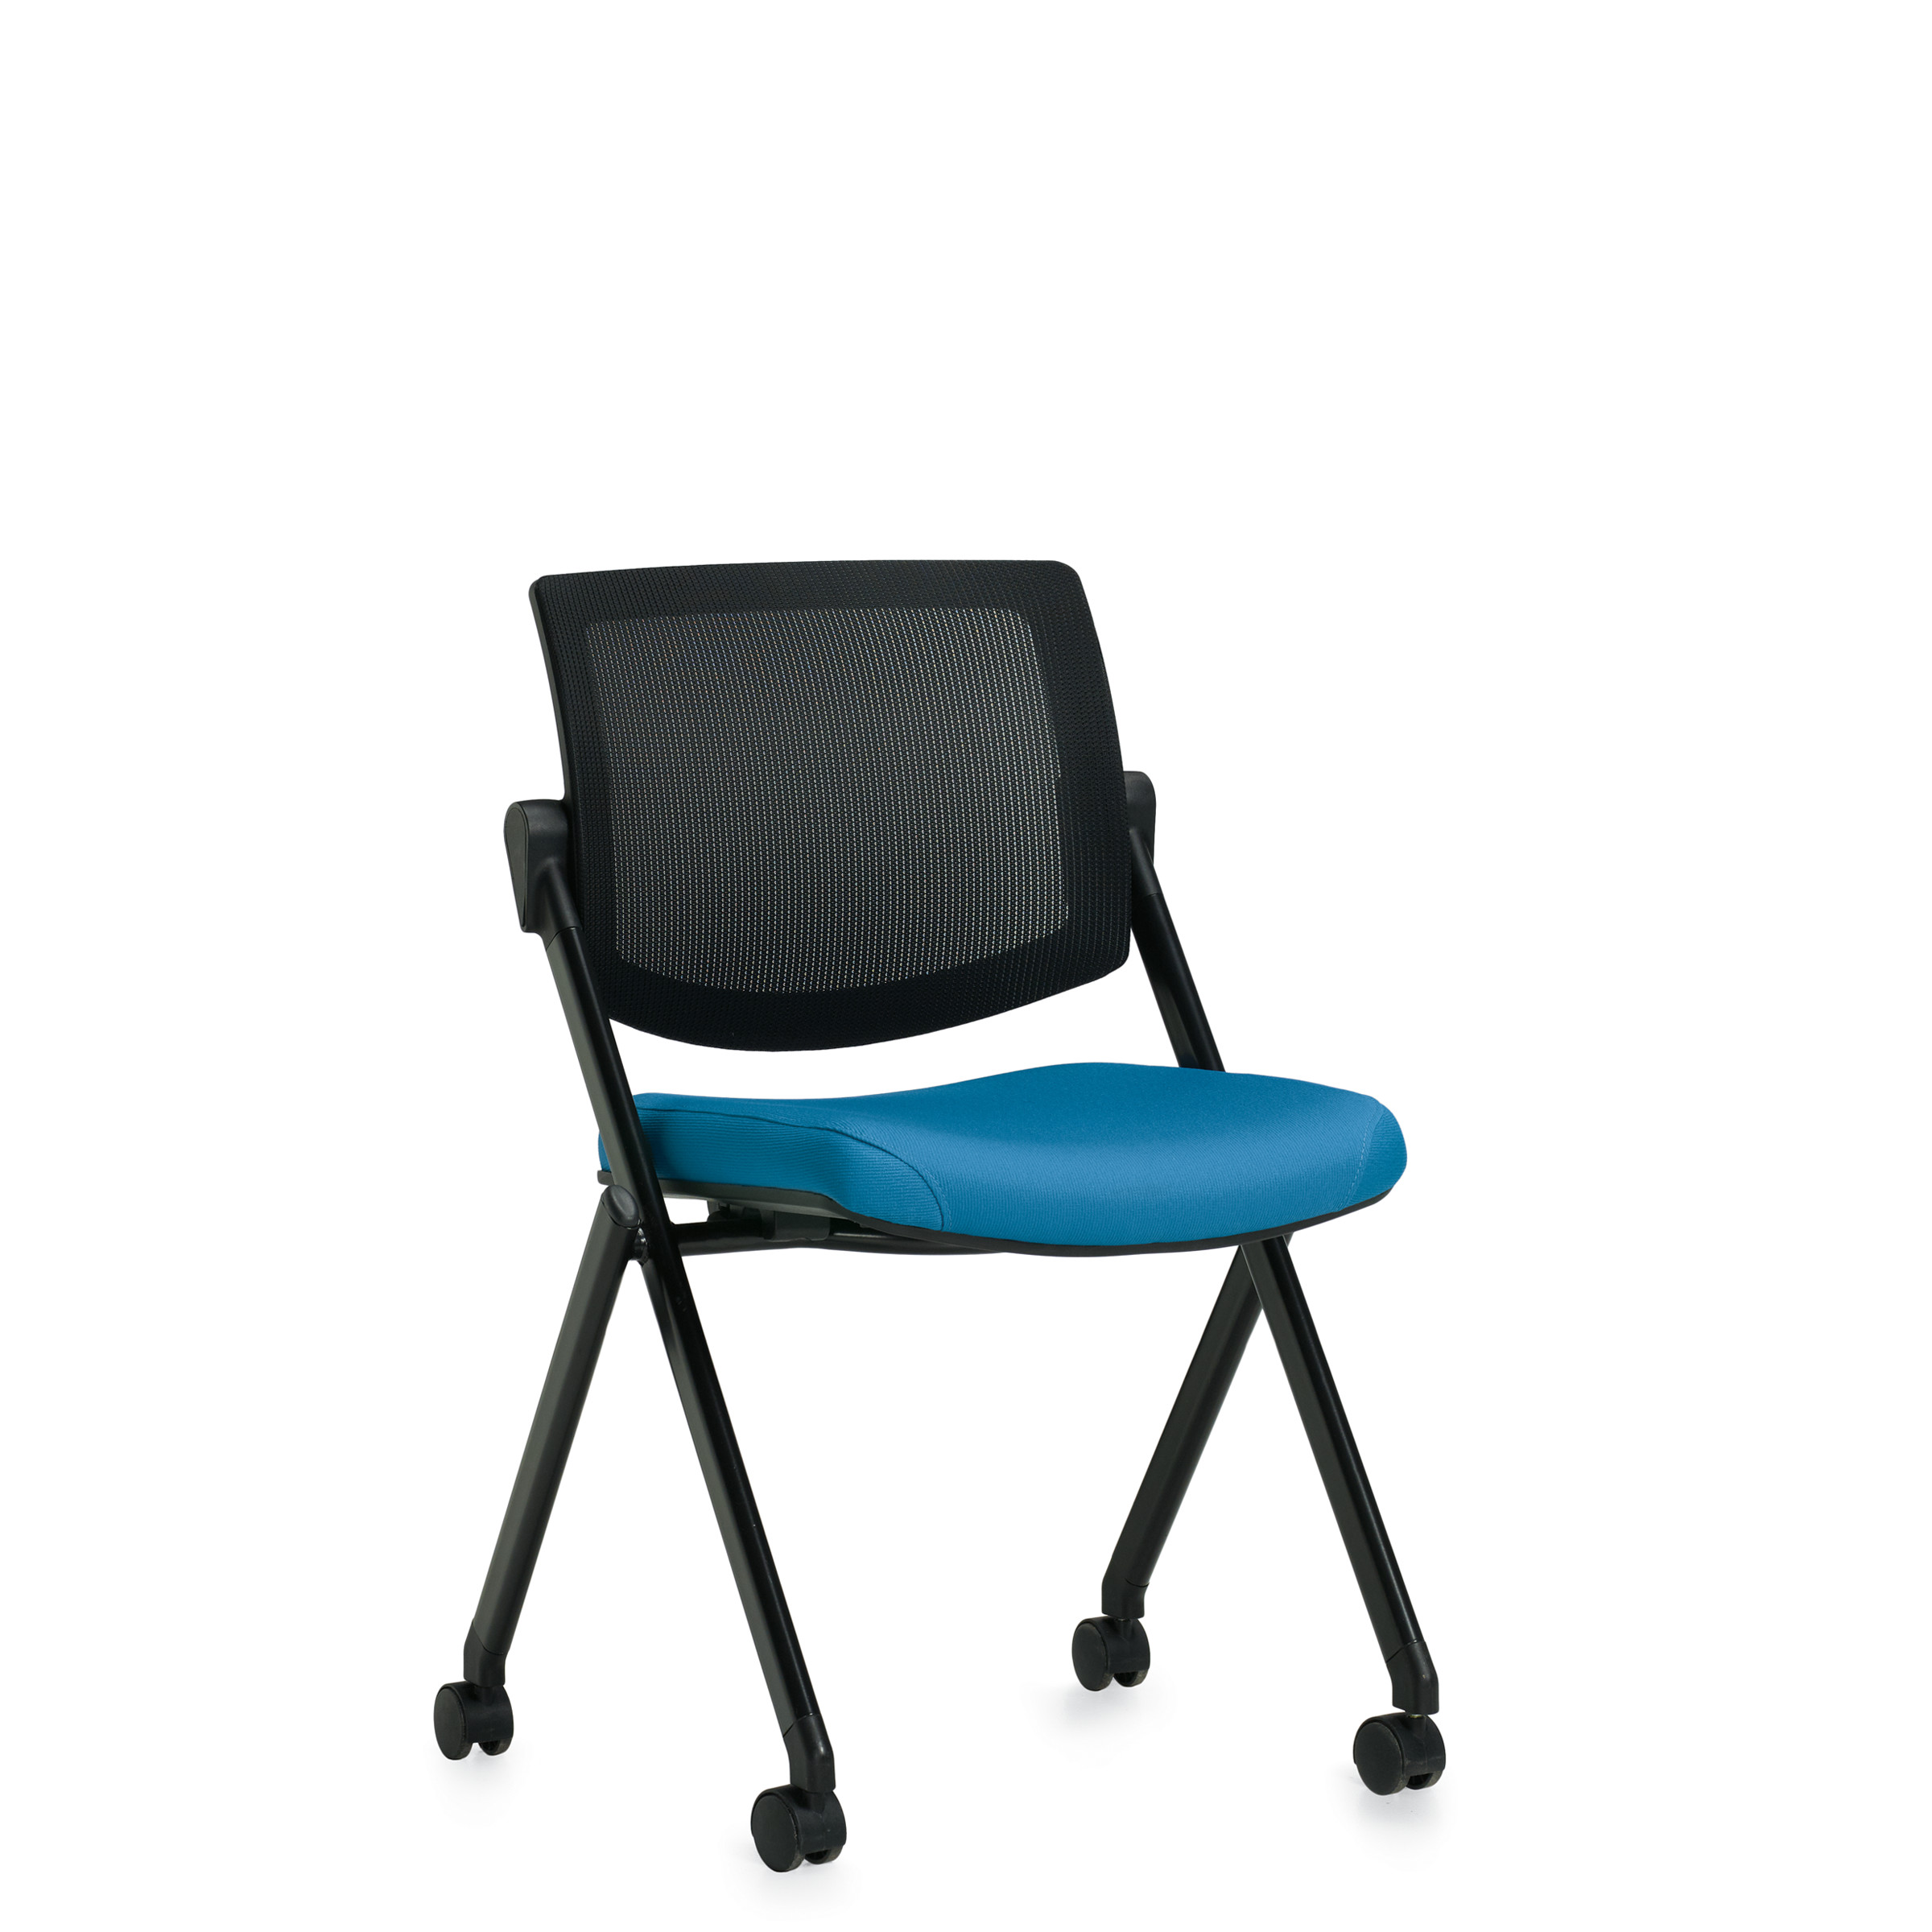 OTG Mesh Back Armless Flip Nesting Chair #OTG11341B